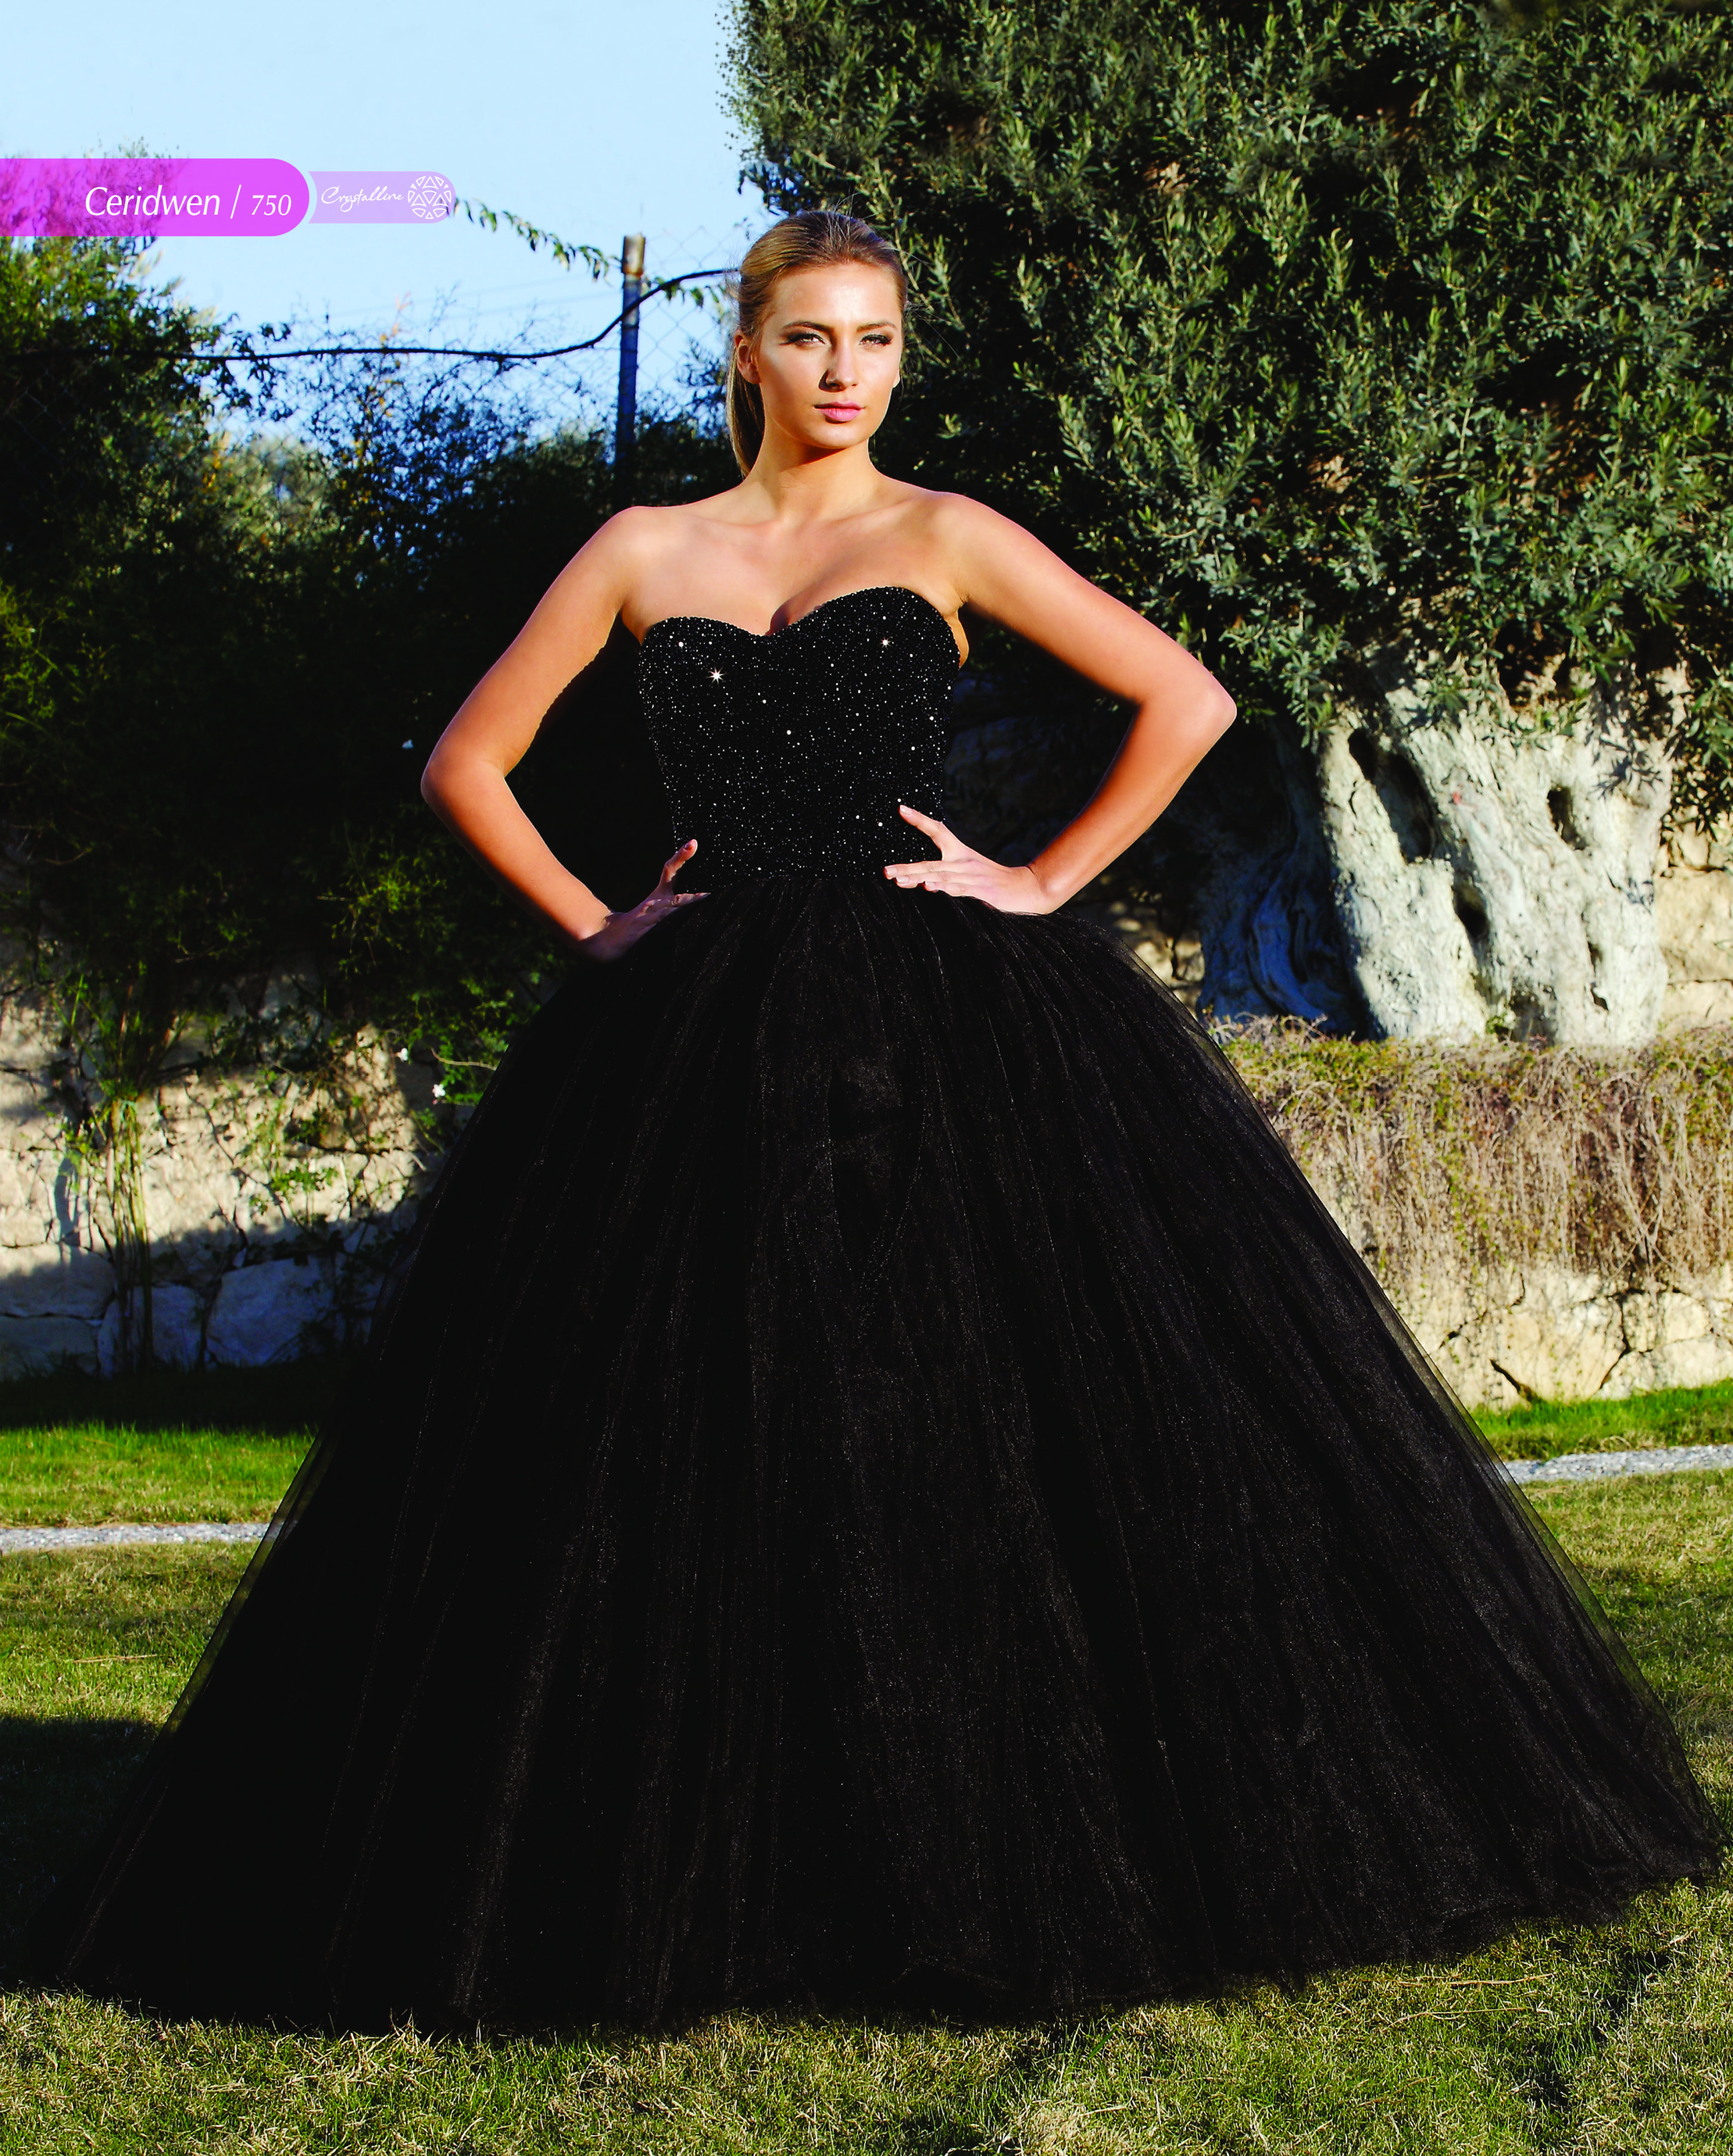 Black Ball Gown Wedding Dress Called Ceridwen By Crystalline Bridals Full Tulle Skirt And An Full Bead Black Ball Gown Ball Gown Wedding Dress Wedding Dresses